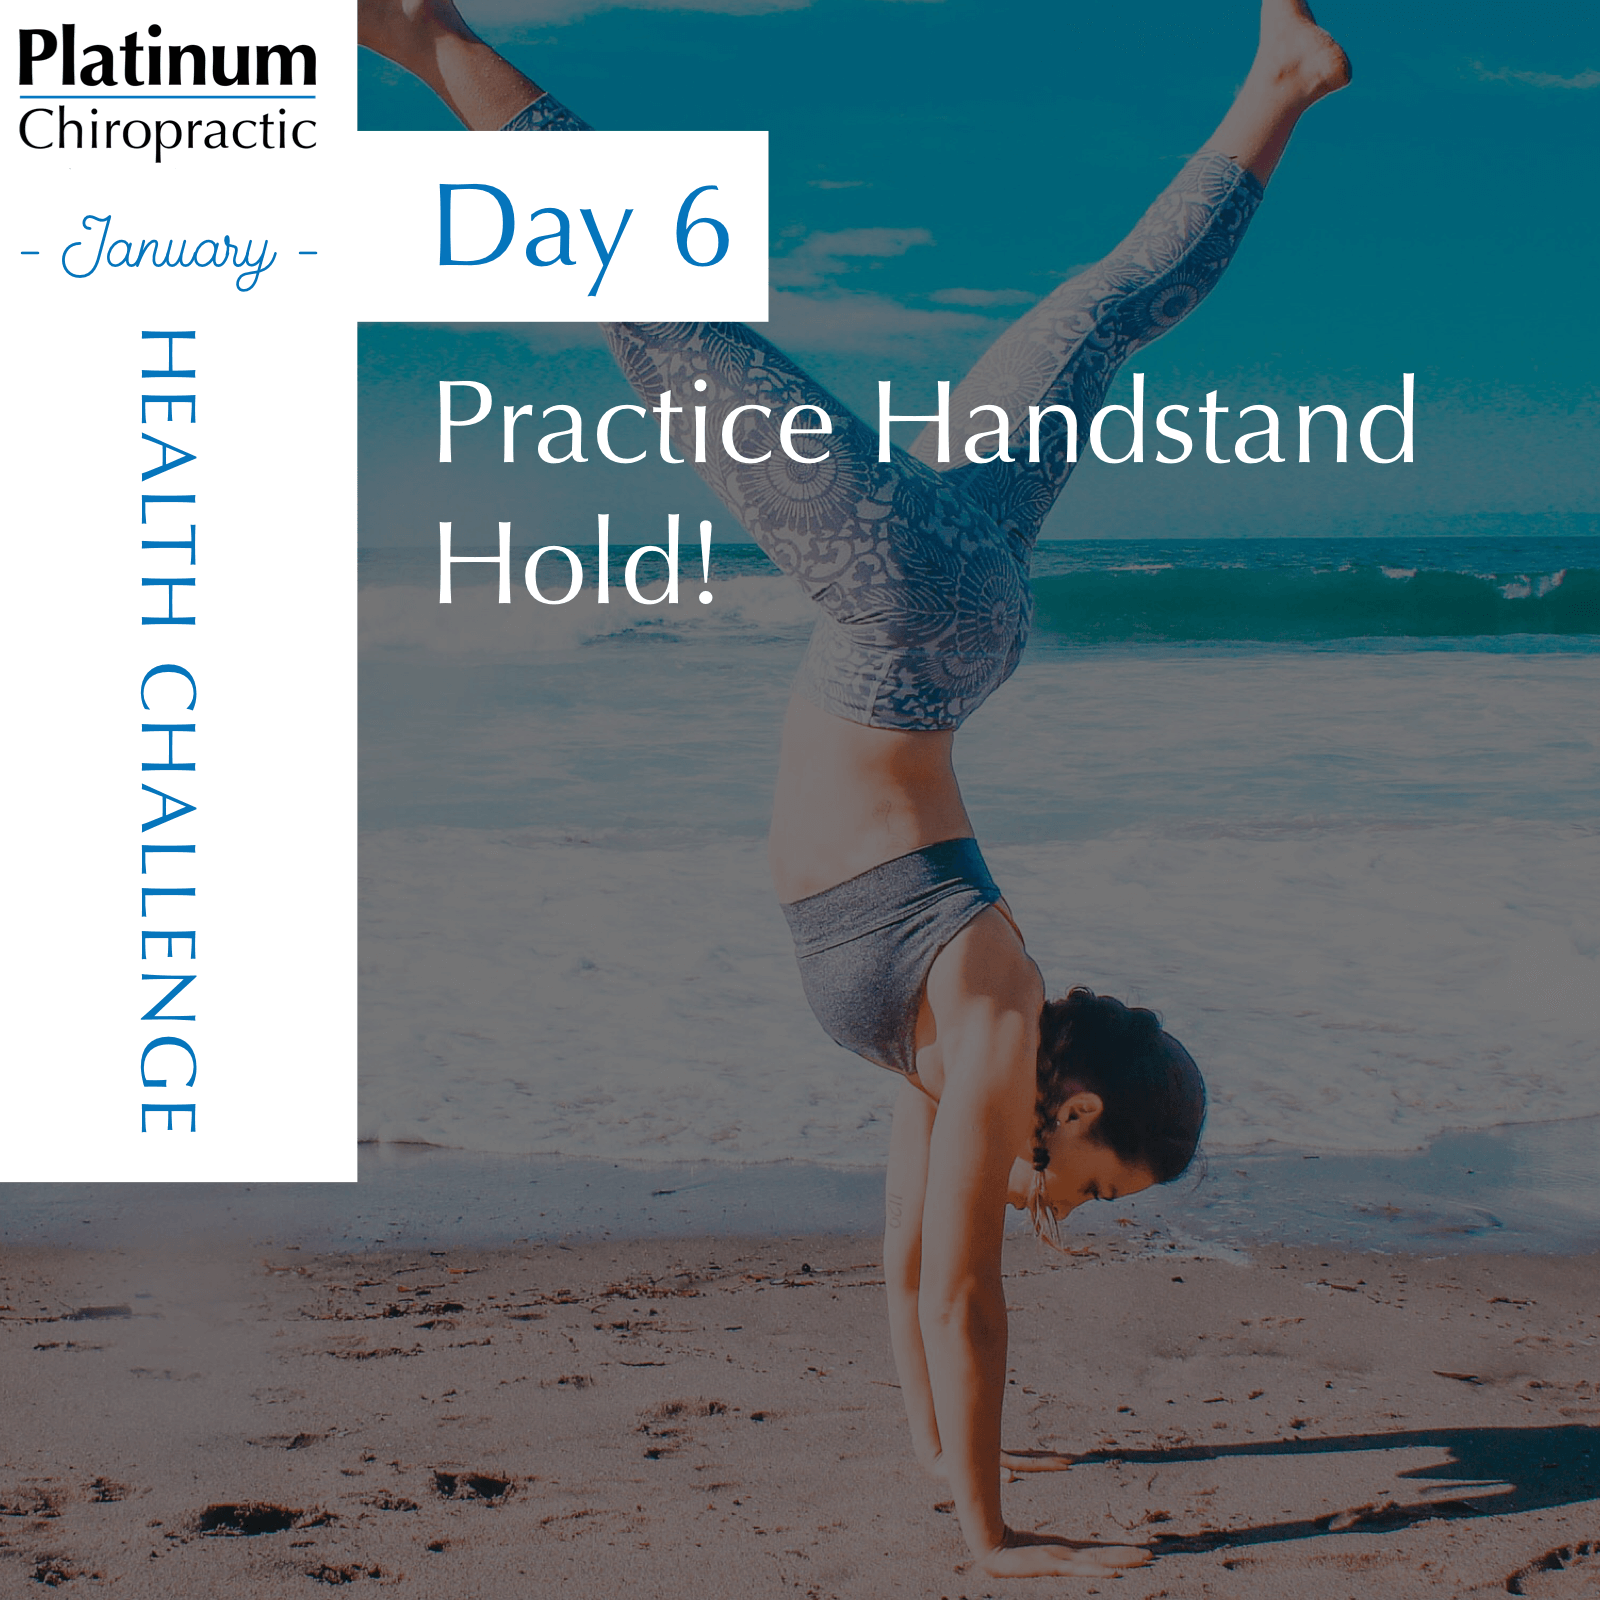 Practice Your Handstand Hold